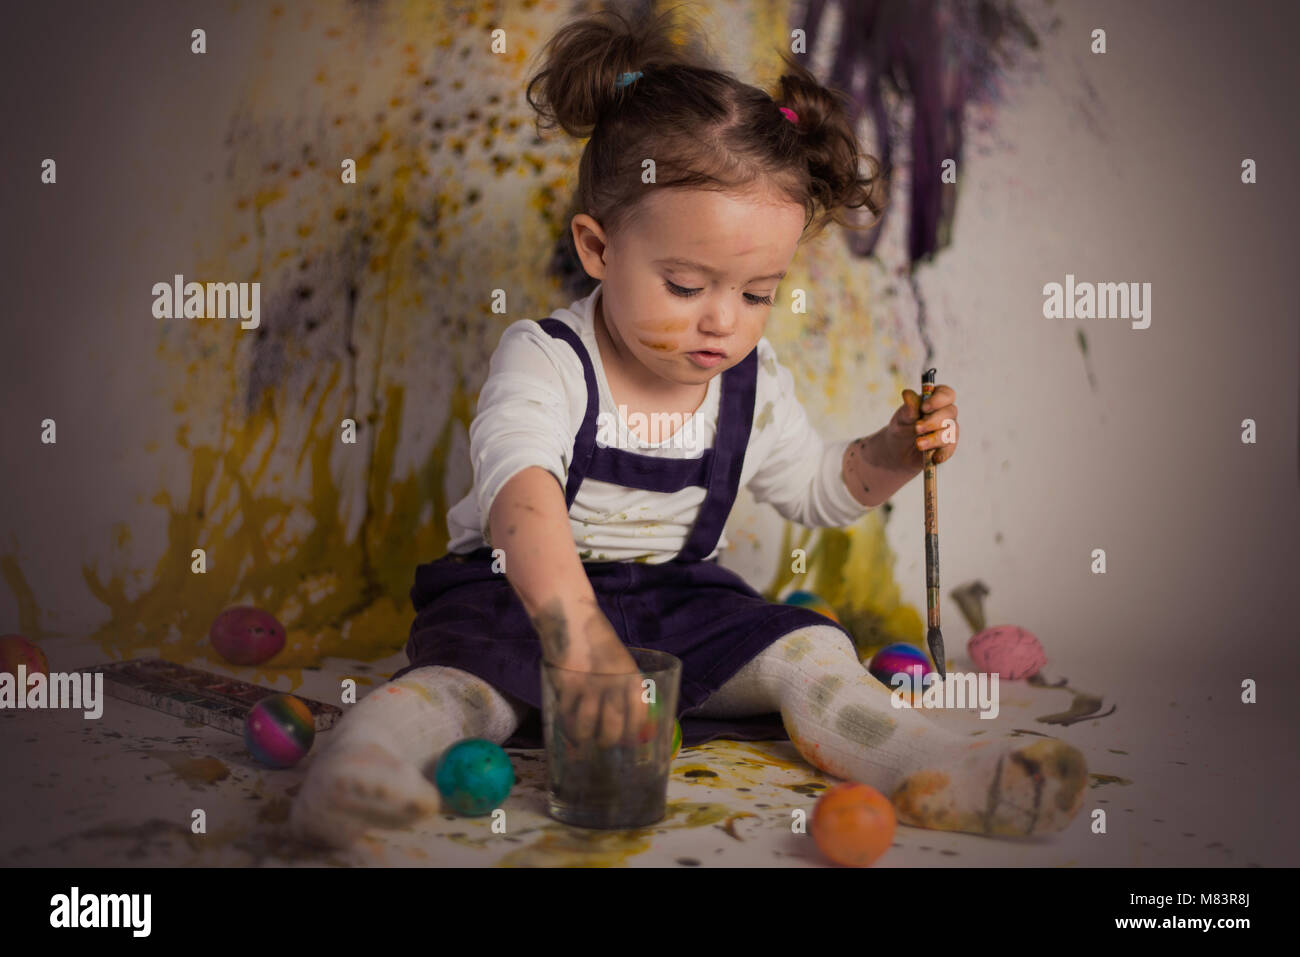 Little girl is painting easter eggs for easter. Stock Photo